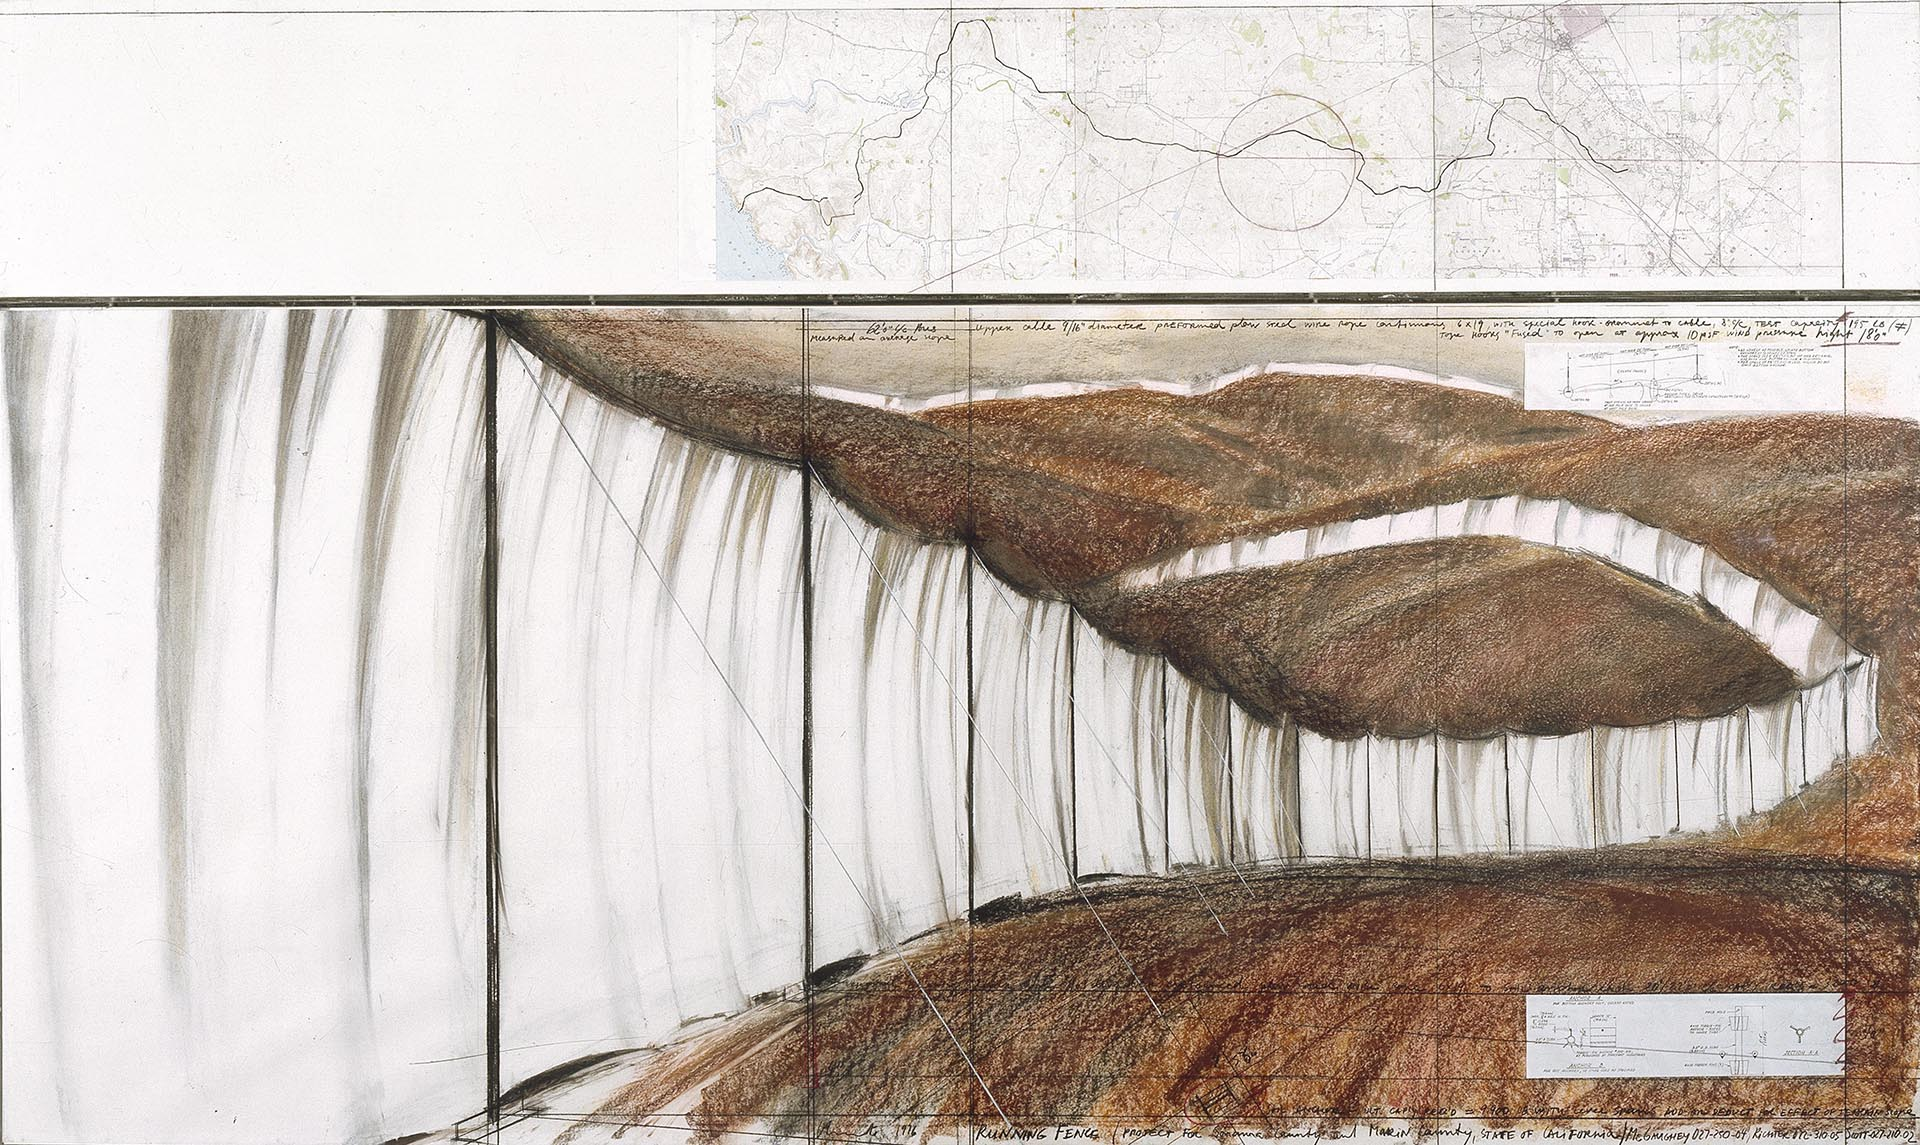 Christo, Running Fence Project for Sonoma County and Marin County, 1976, 147x245 cm